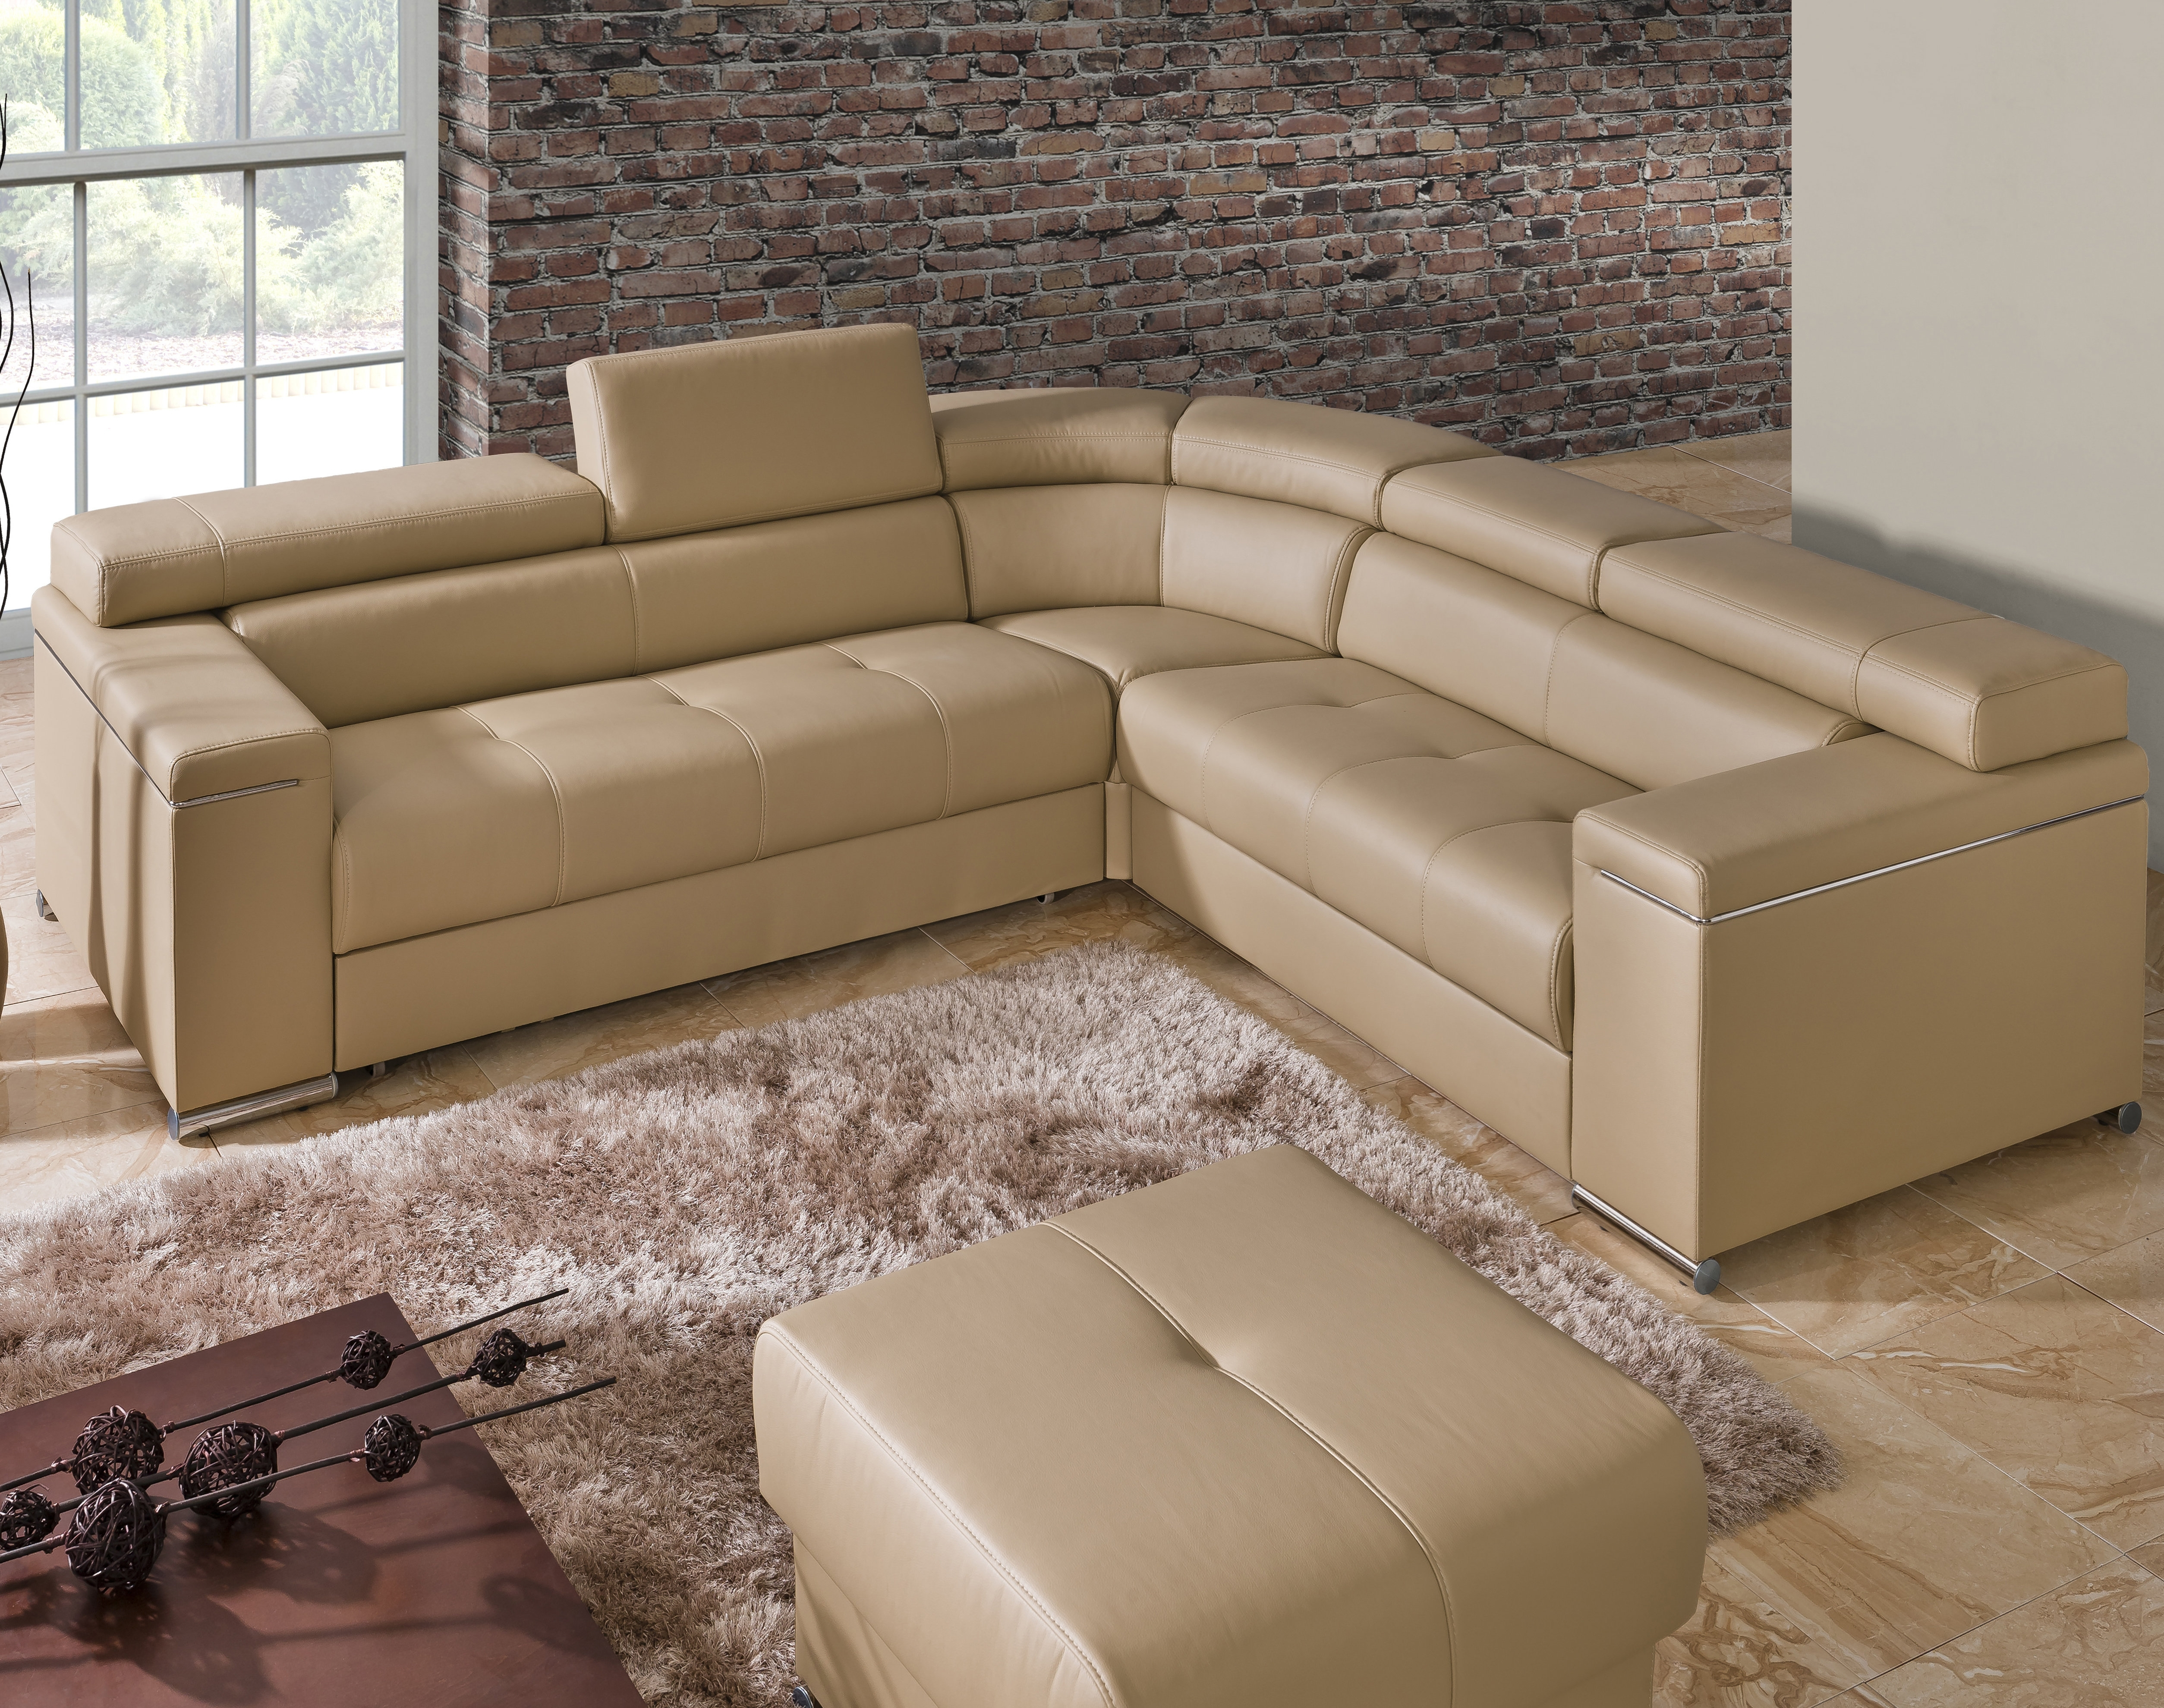 The Collection German Furniture Sleeper Sectional   Wayfair Within Blaine 4 Piece Sectionals (Image 24 of 25)